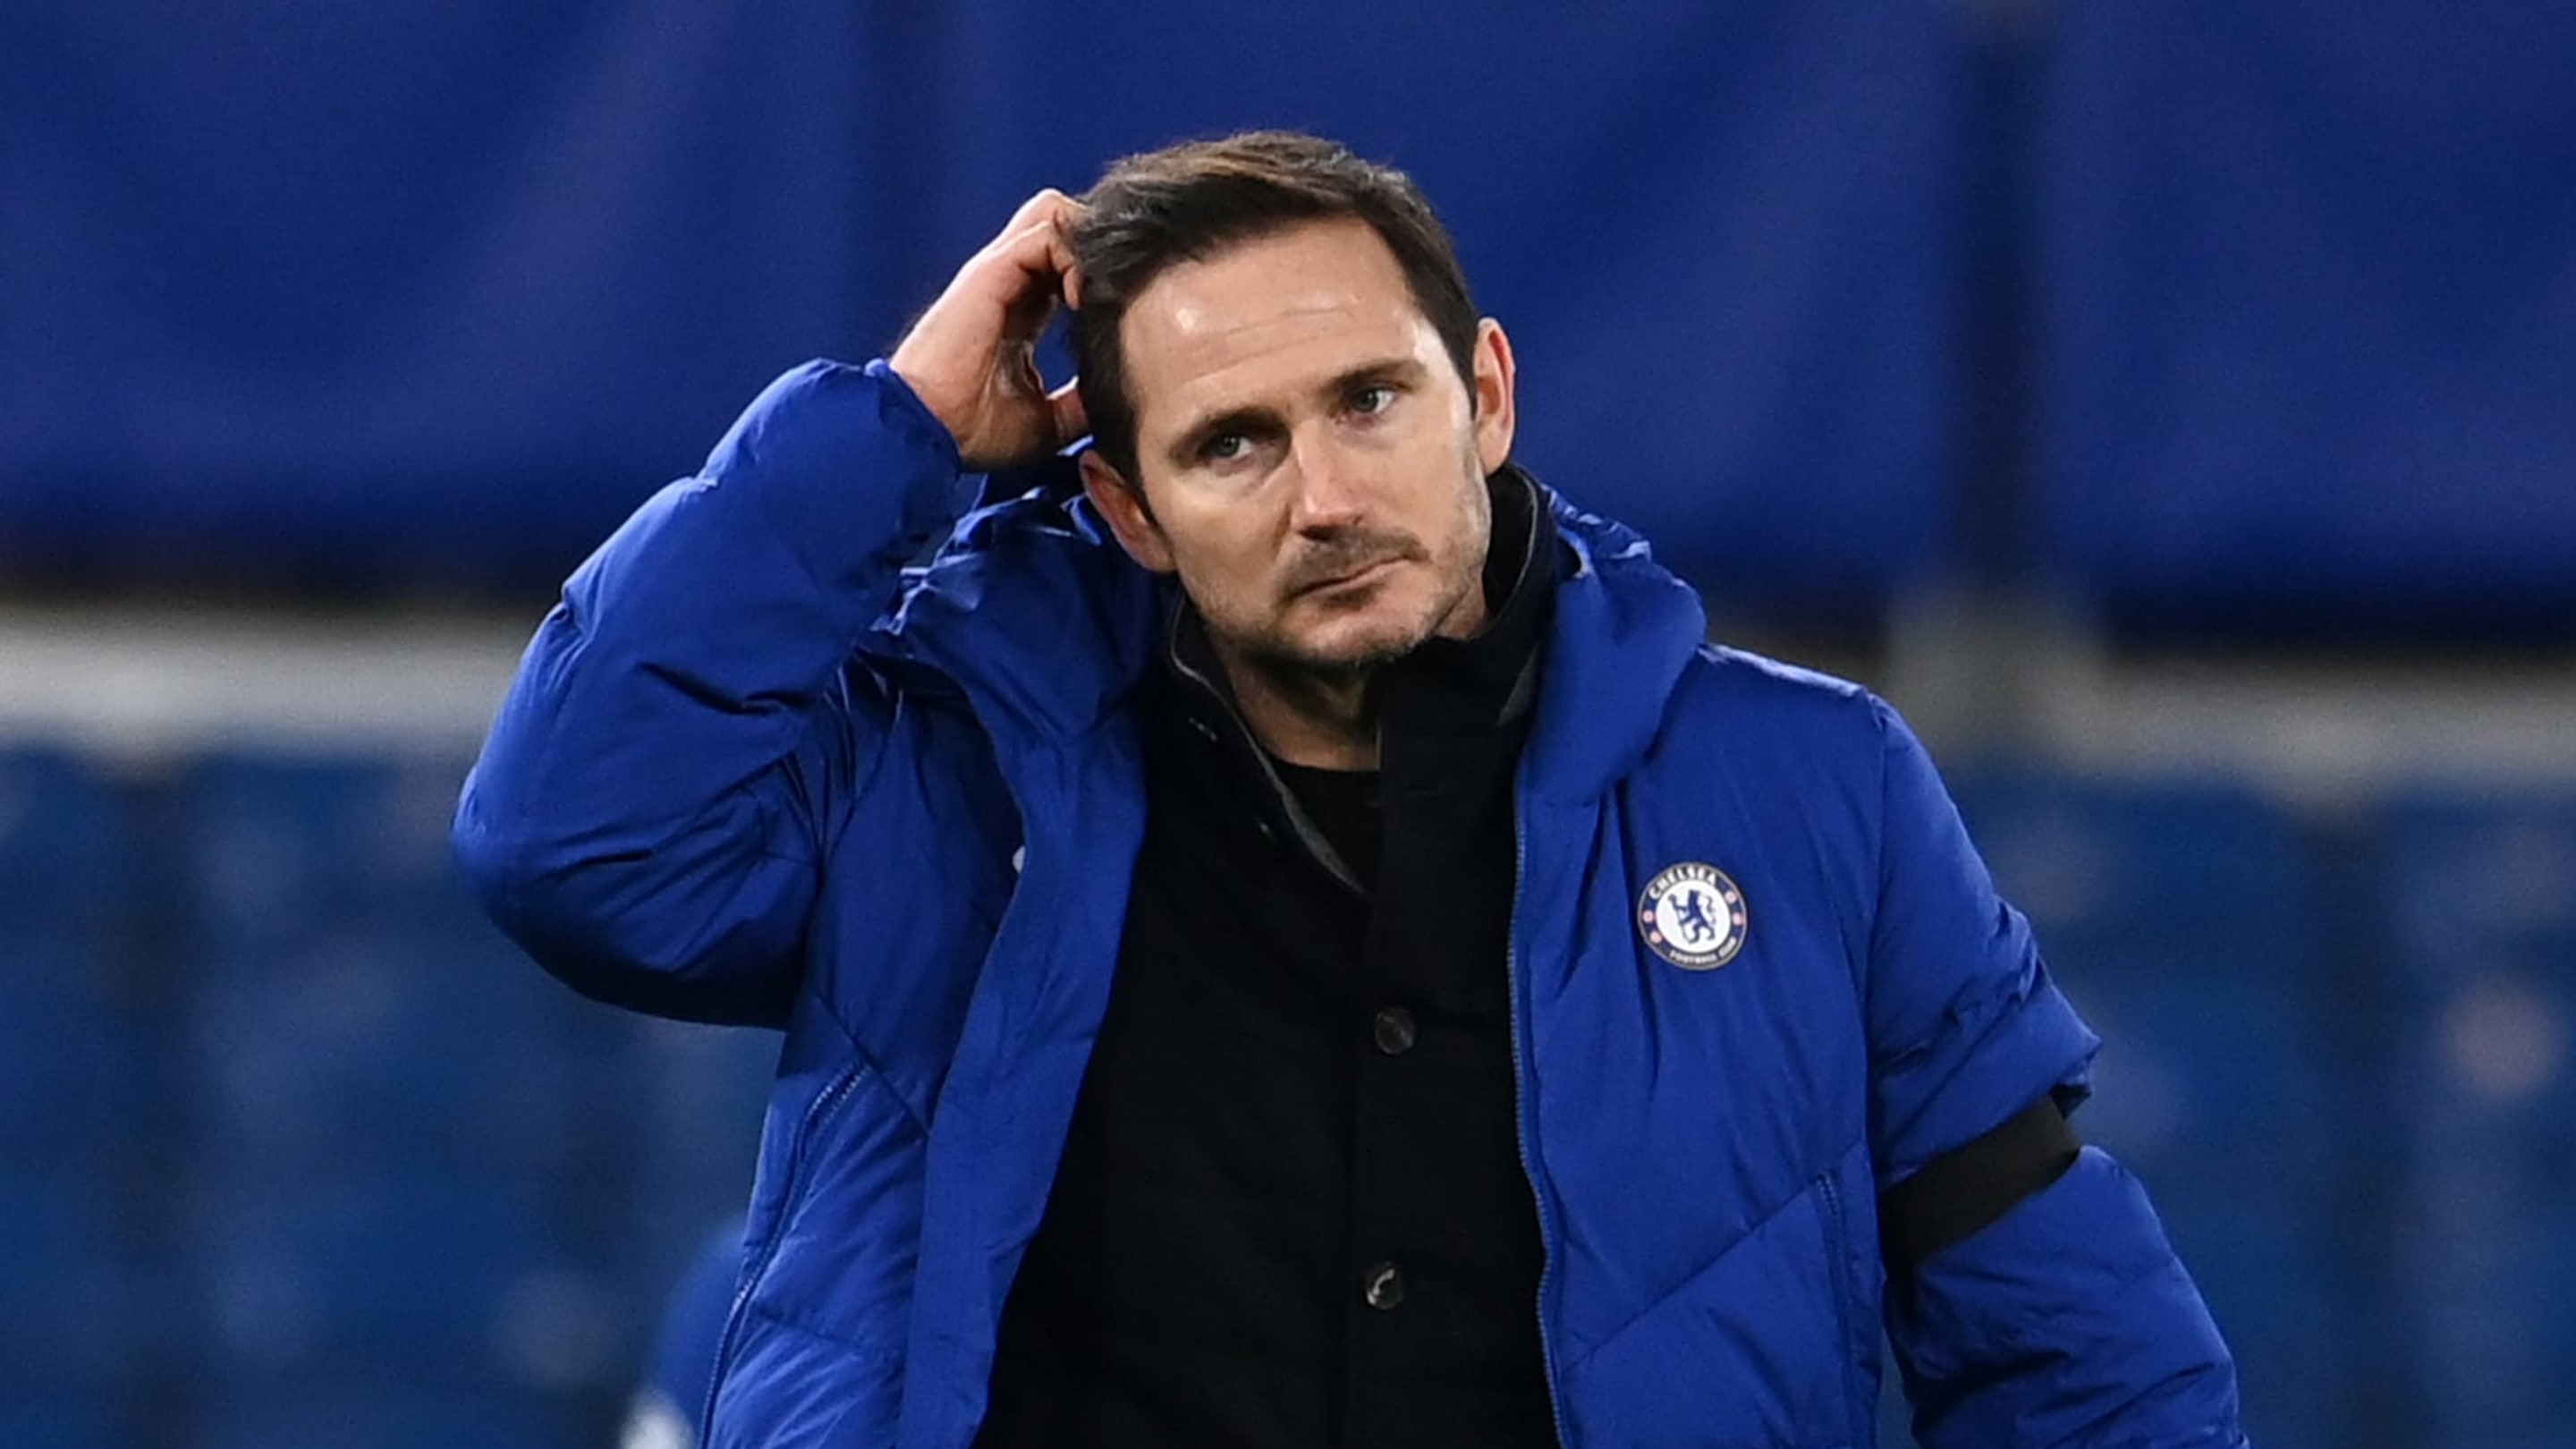 Frank Lampard's tactical rigidity could cost him his job at Chelsea